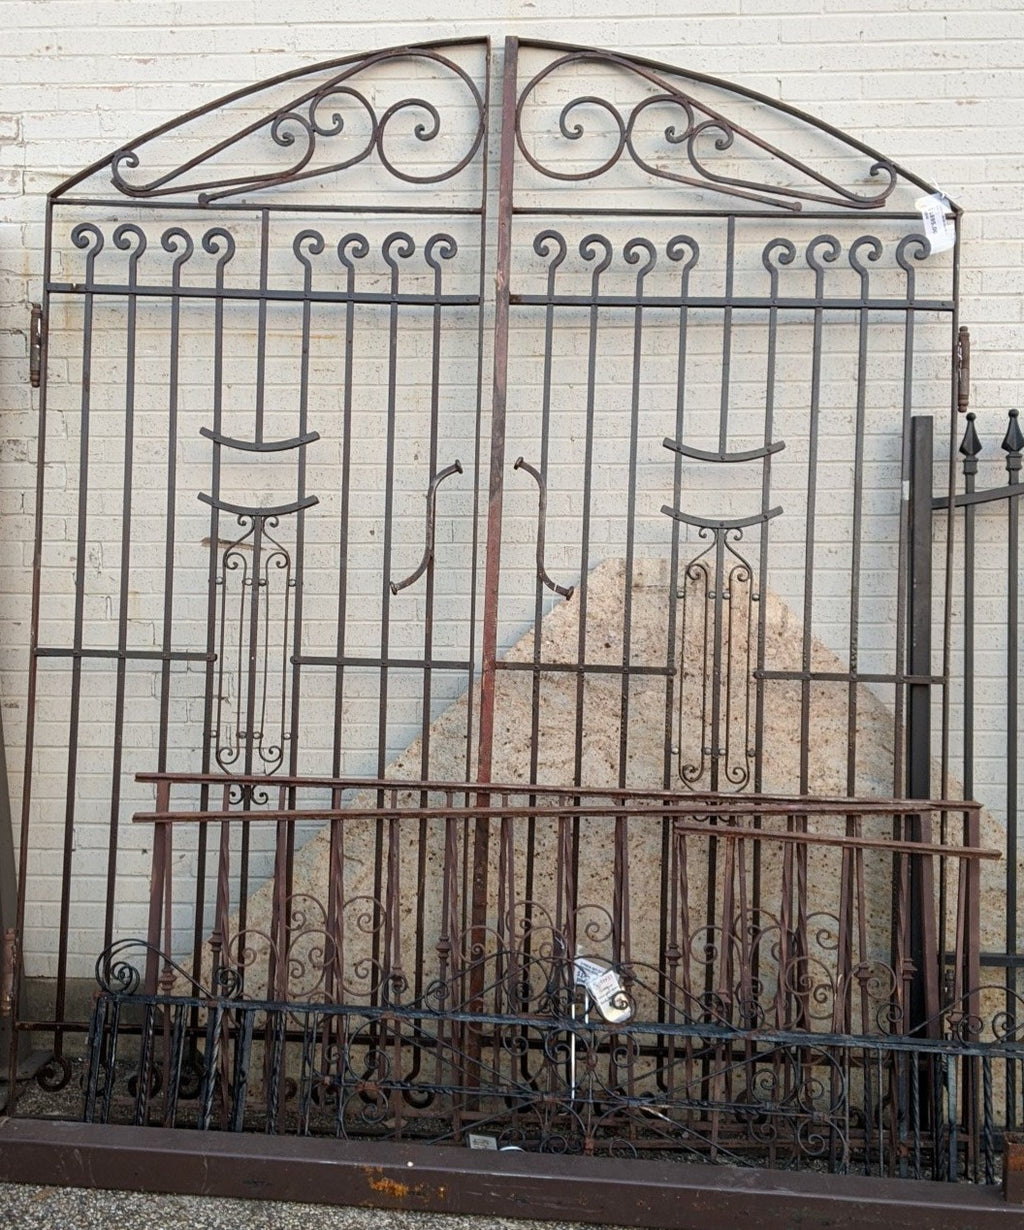 LARGE IRON DOUBLE GATE